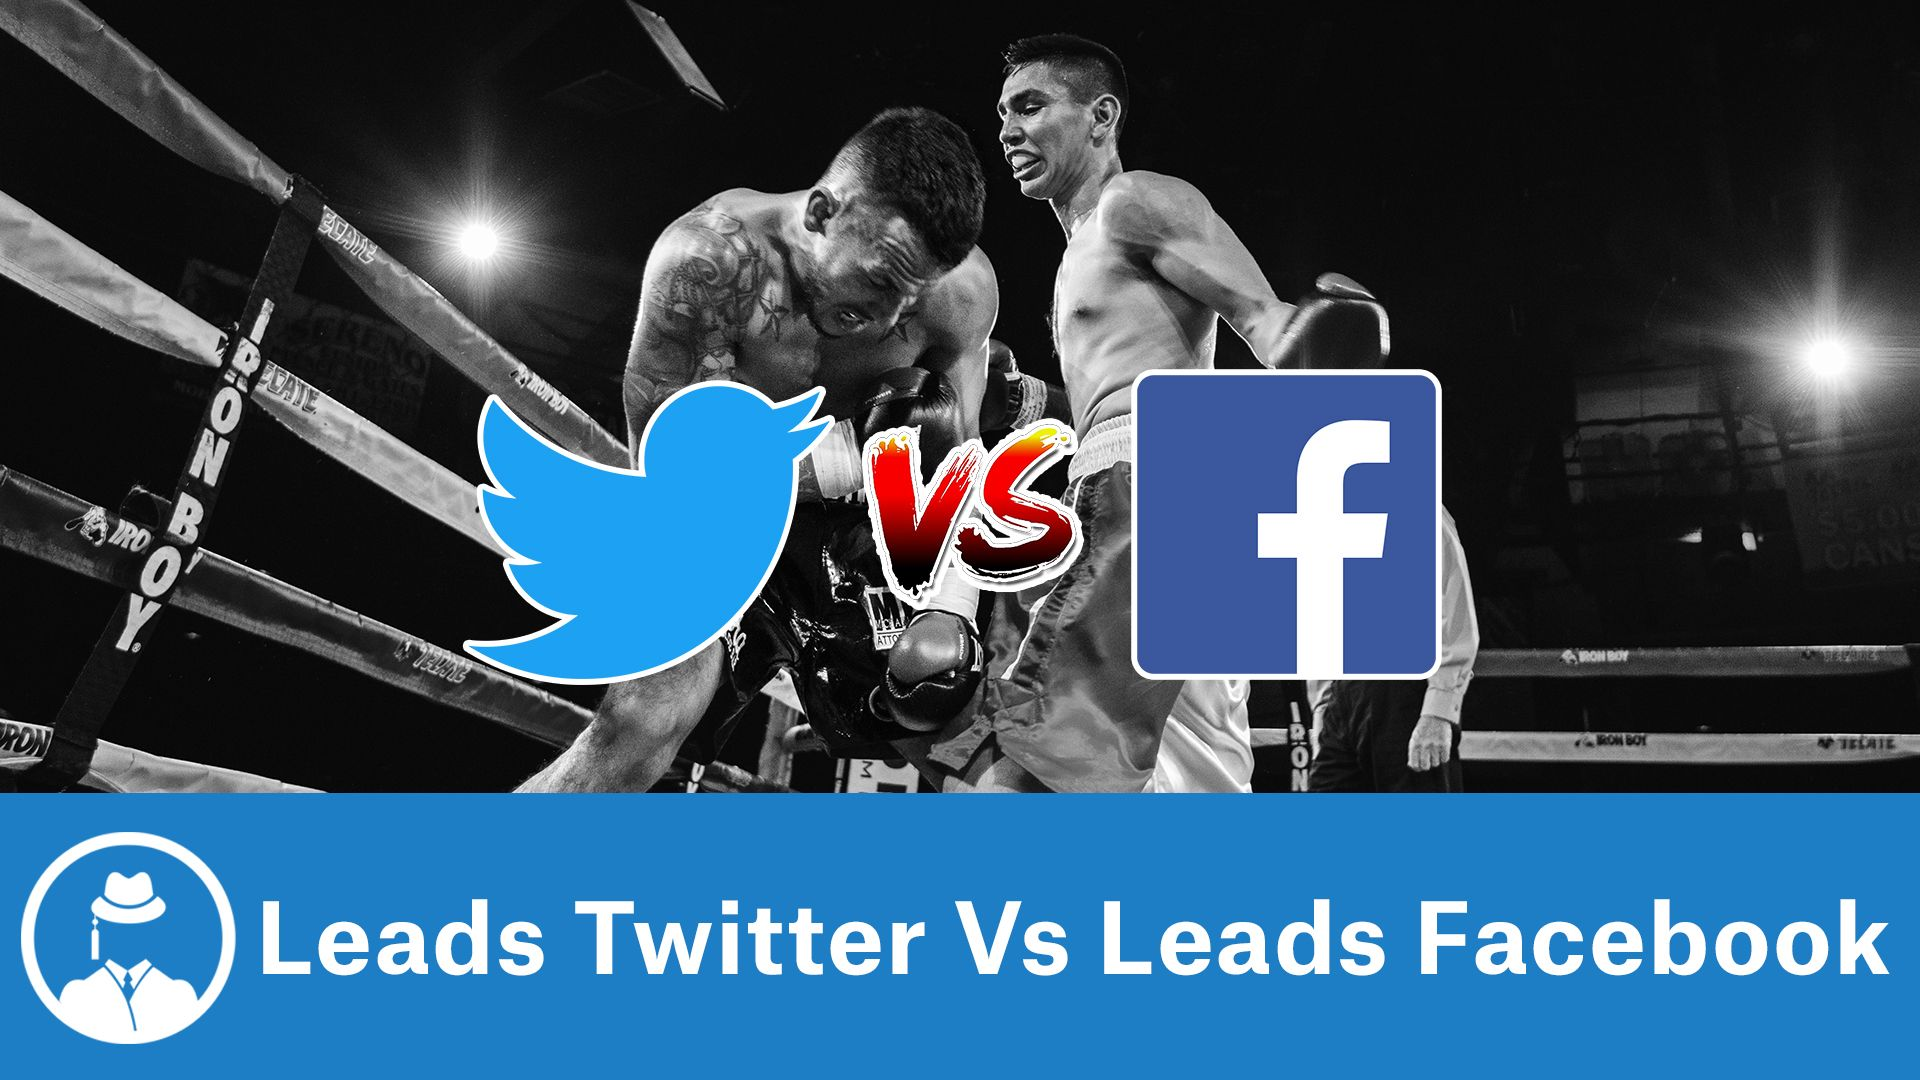 Leads Twitter Vs Leads Facebook #GrowthHacking #WebMarketing #FormationGrowthHacking #CentreDeFormationFrance #TunnelAARRR #AARRR #SocialMedia #CommunityManagement #SEO #MarketingDigital #SiteWeb